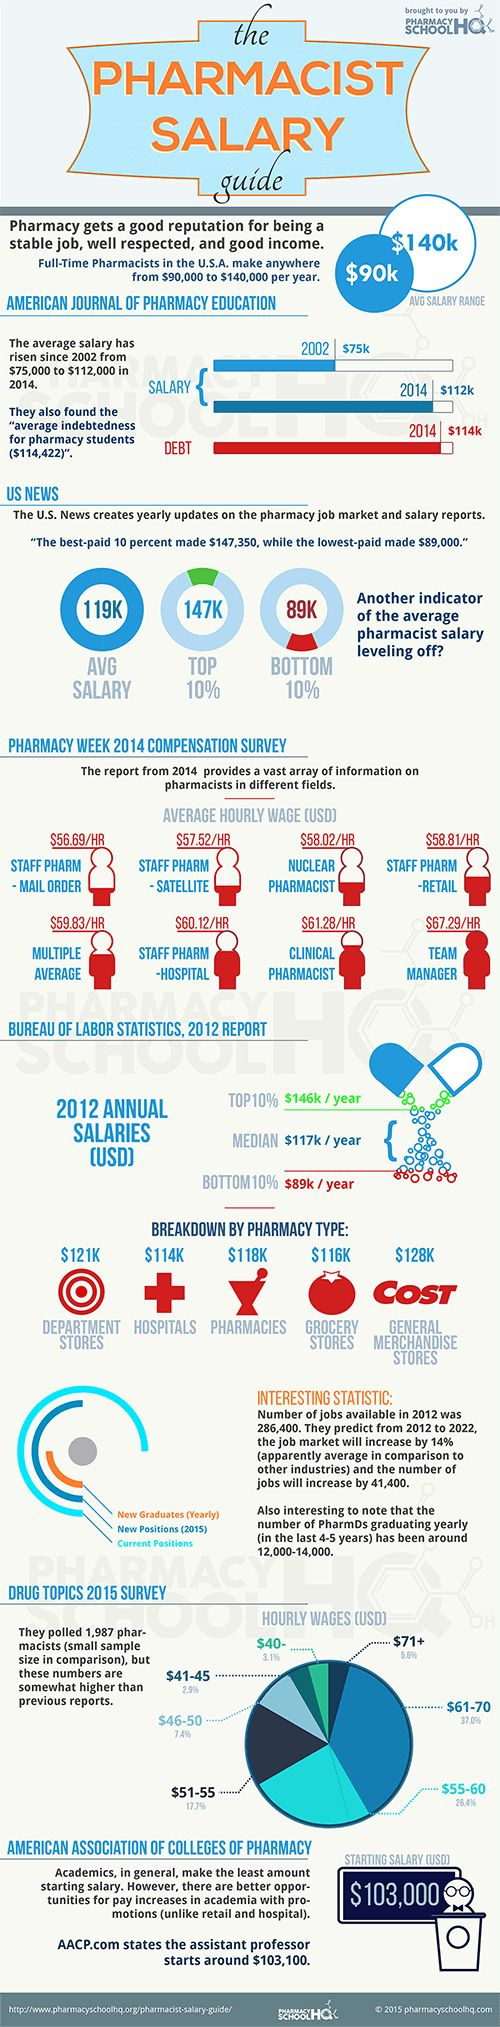 Pharmacist Salary Guide 2015 from Pharmacy School HQ